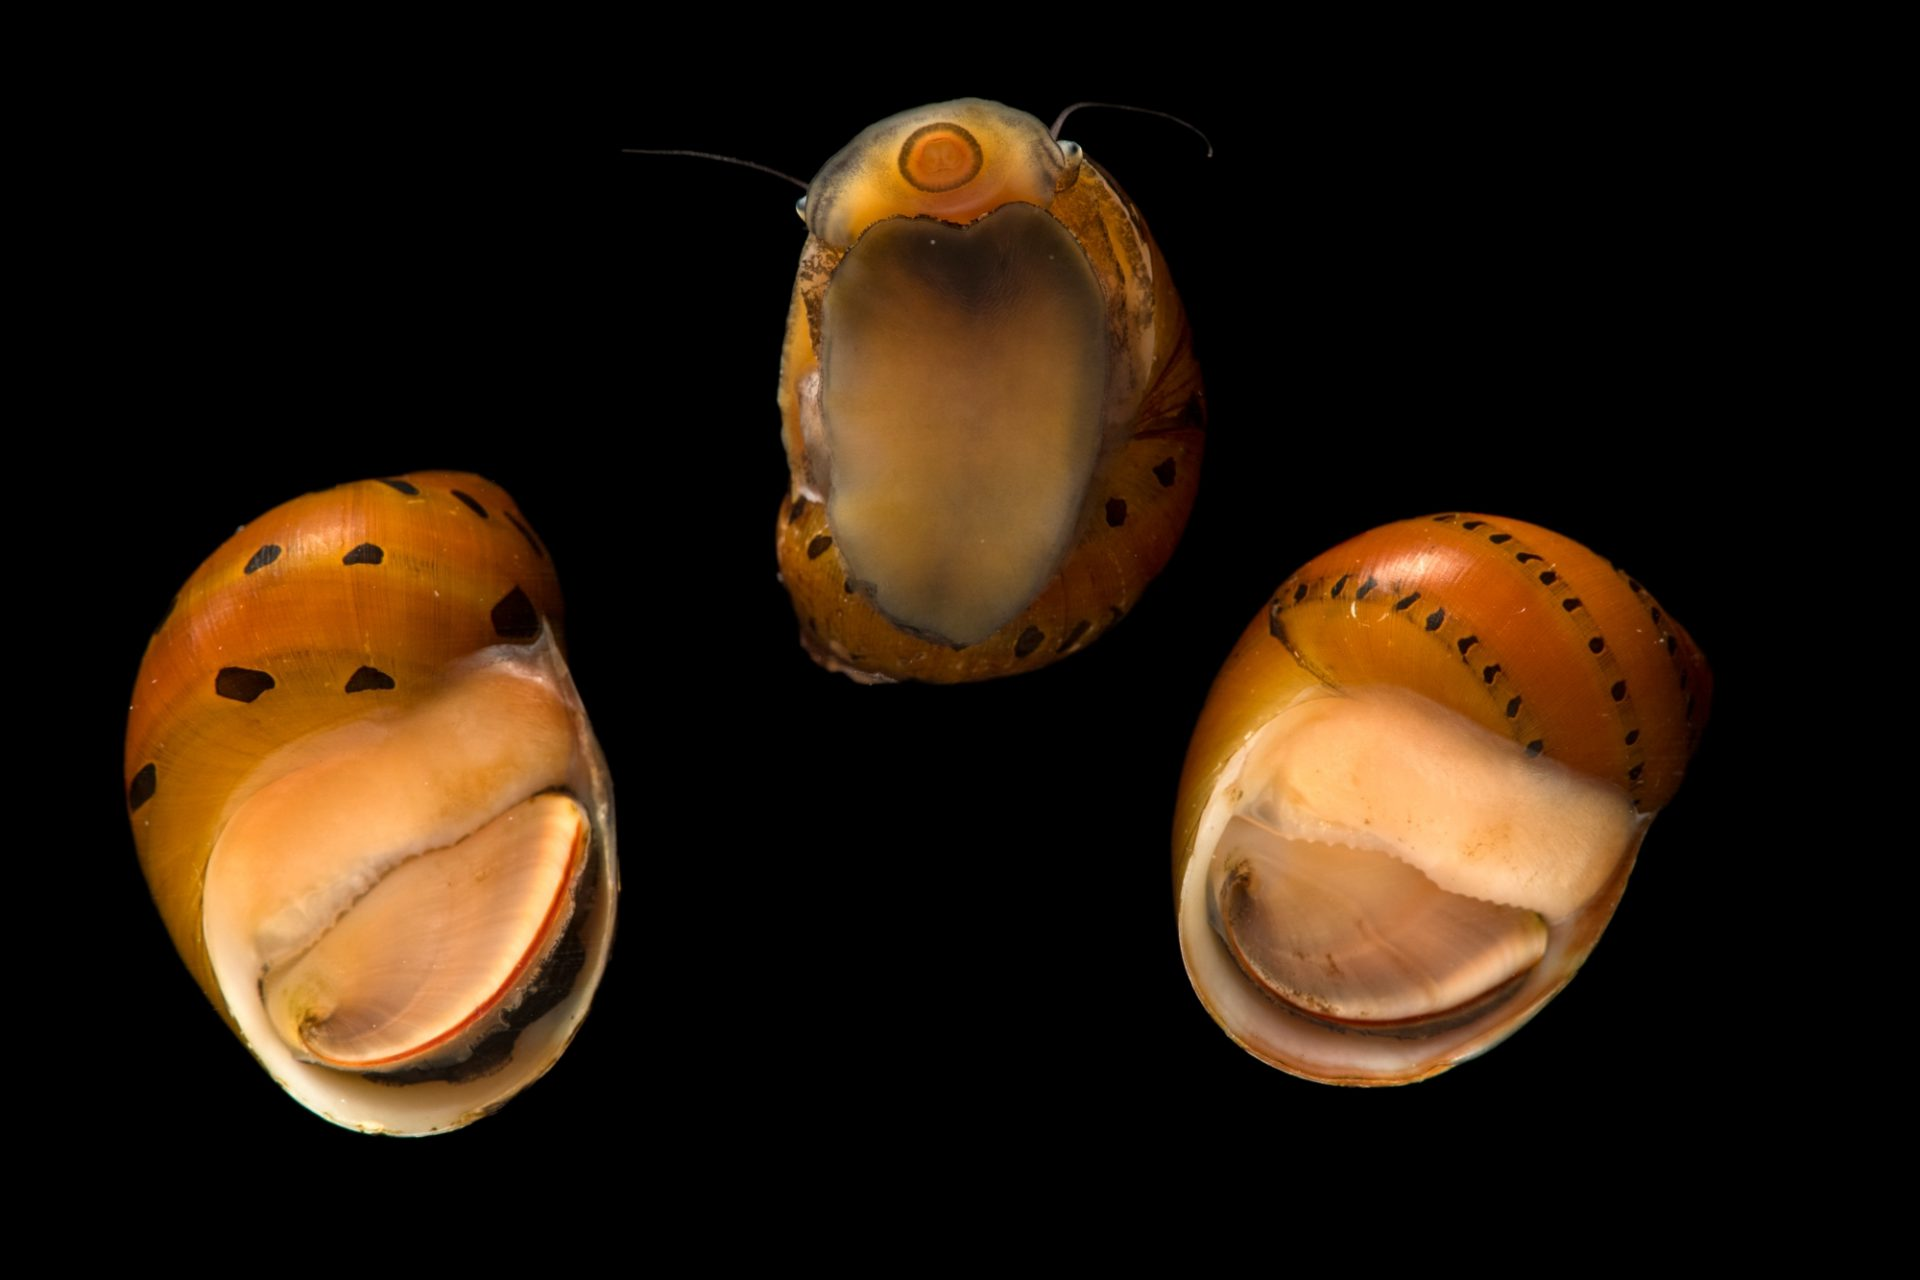 Photo: Tire track snail or red nerite snail (Vittina waigiensis) from a private collection.